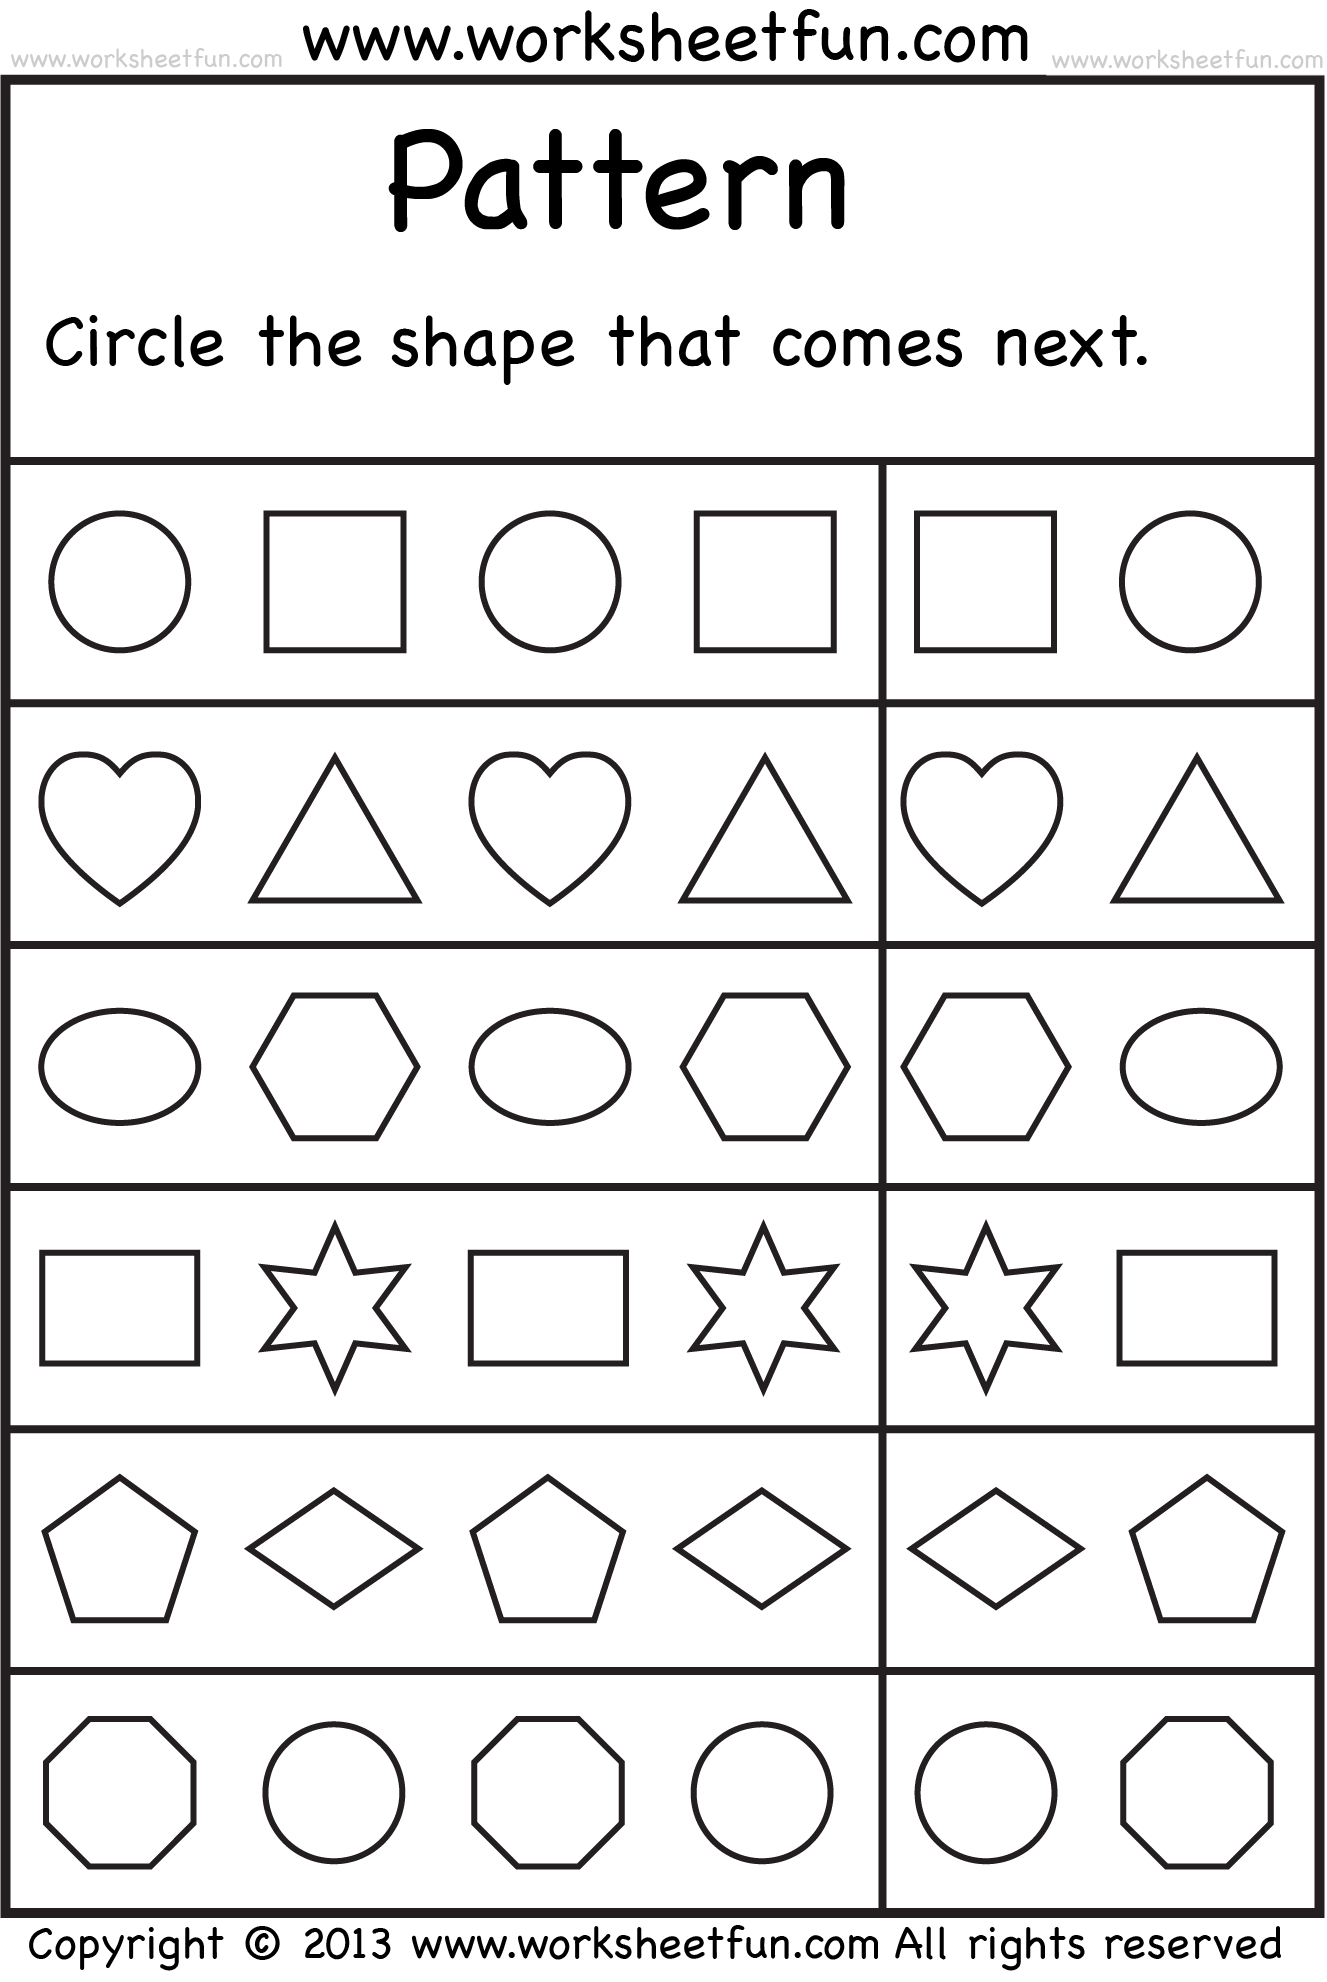 Weirdmailus  Gorgeous  Images About School Worksheets On Pinterest  Number Words  With Interesting  Images About School Worksheets On Pinterest  Number Words Alphabet Worksheets And Free Printable Kindergarten Worksheets With Attractive Unprotect An Excel Worksheet Also Descriptive Words Worksheets In Addition Money Skills Worksheets Free And Helping Verbs Worksheets Th Grade As Well As Rational Exponent Worksheets Additionally There Their Worksheets From Pinterestcom With Weirdmailus  Interesting  Images About School Worksheets On Pinterest  Number Words  With Attractive  Images About School Worksheets On Pinterest  Number Words Alphabet Worksheets And Free Printable Kindergarten Worksheets And Gorgeous Unprotect An Excel Worksheet Also Descriptive Words Worksheets In Addition Money Skills Worksheets Free From Pinterestcom